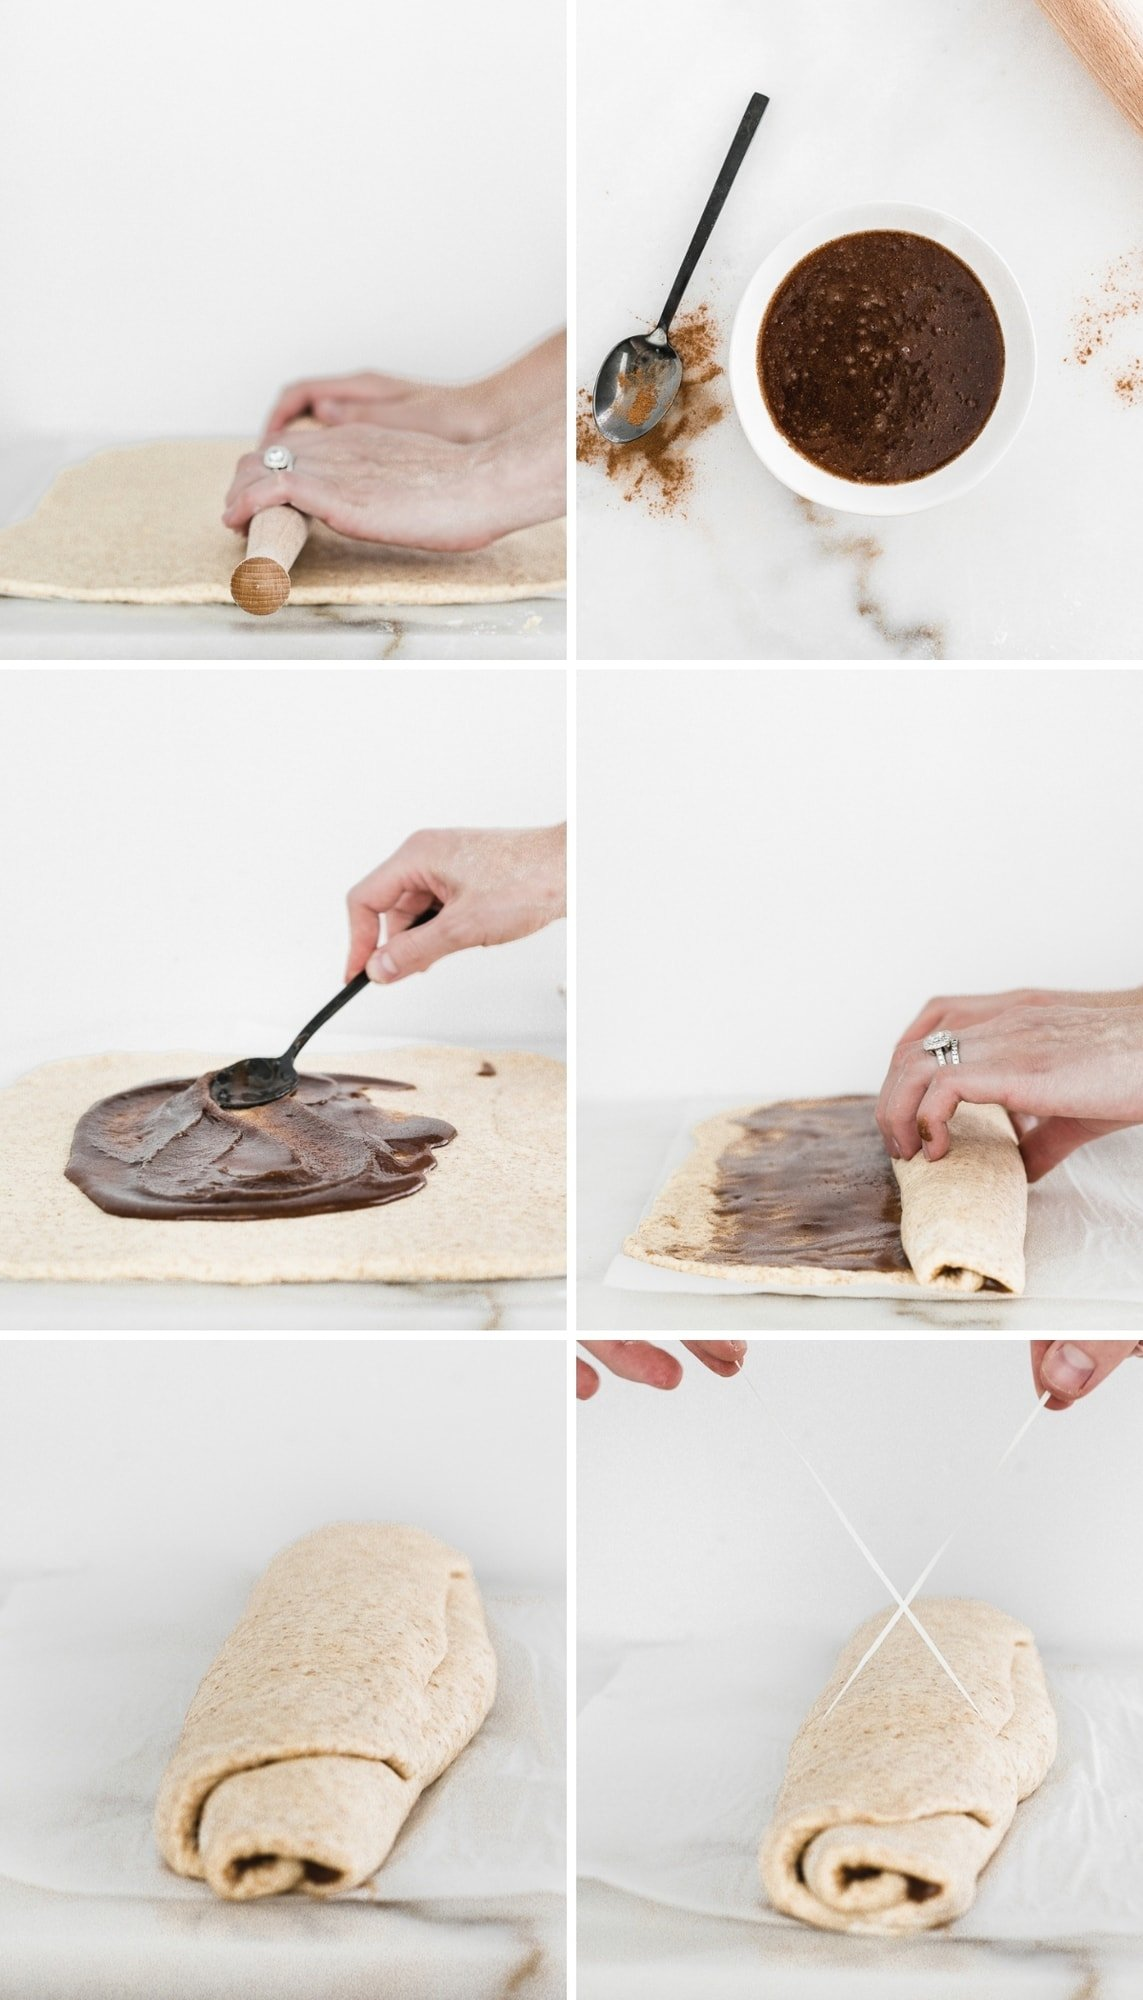 collage showing steps to rolling out and filling cinnamon roll dough.